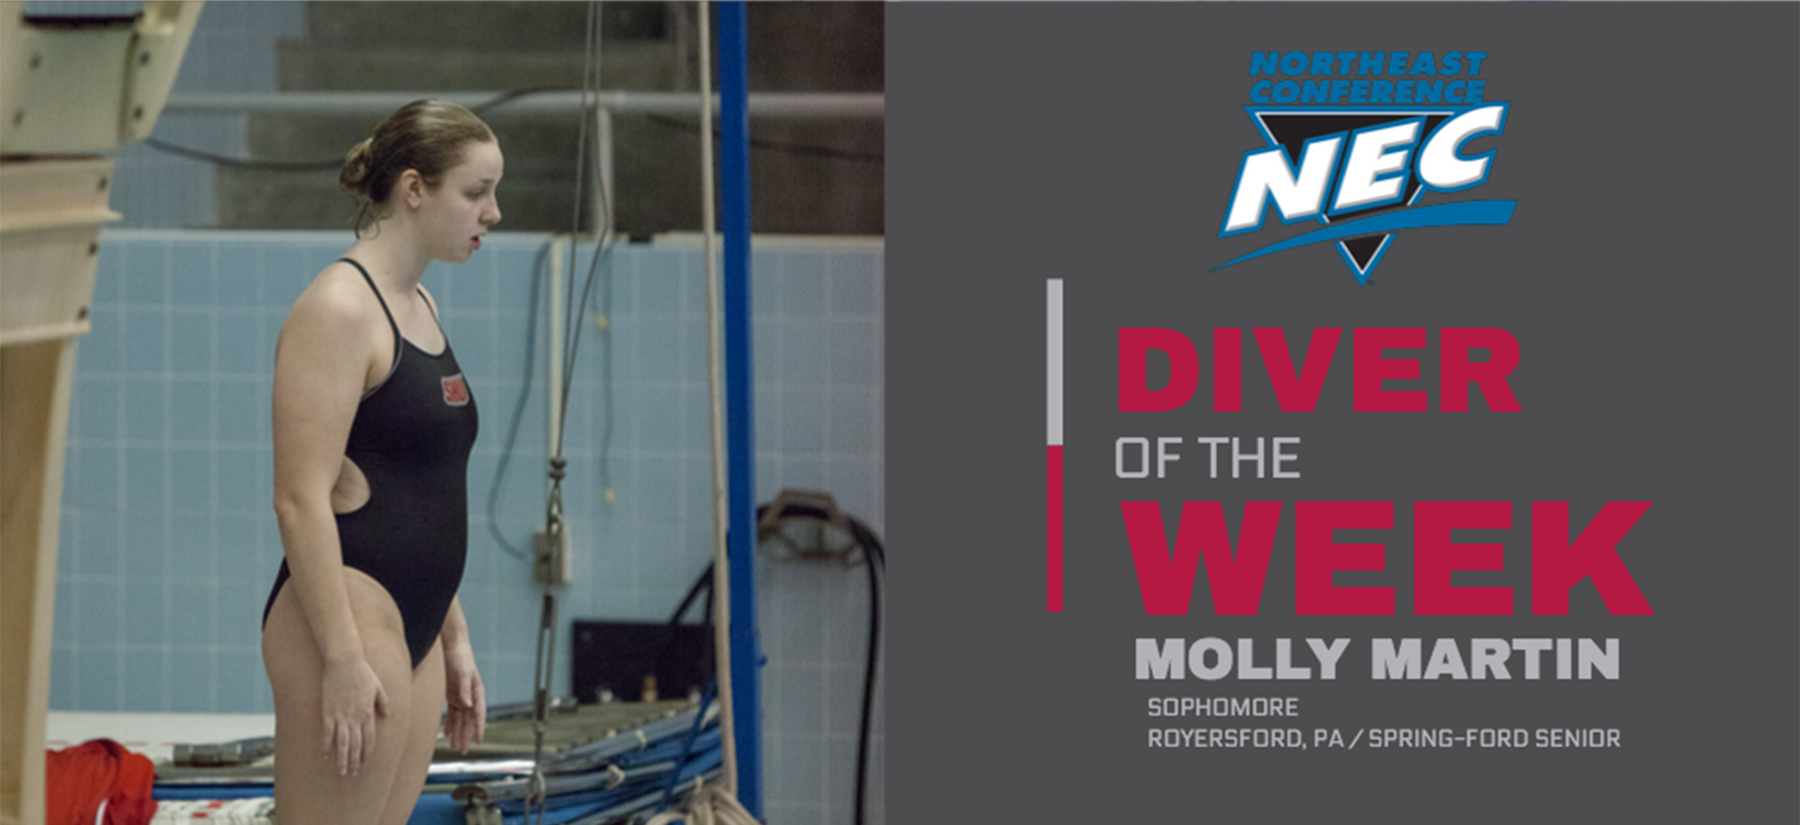 Martin Tabbed NEC Diver of the Week